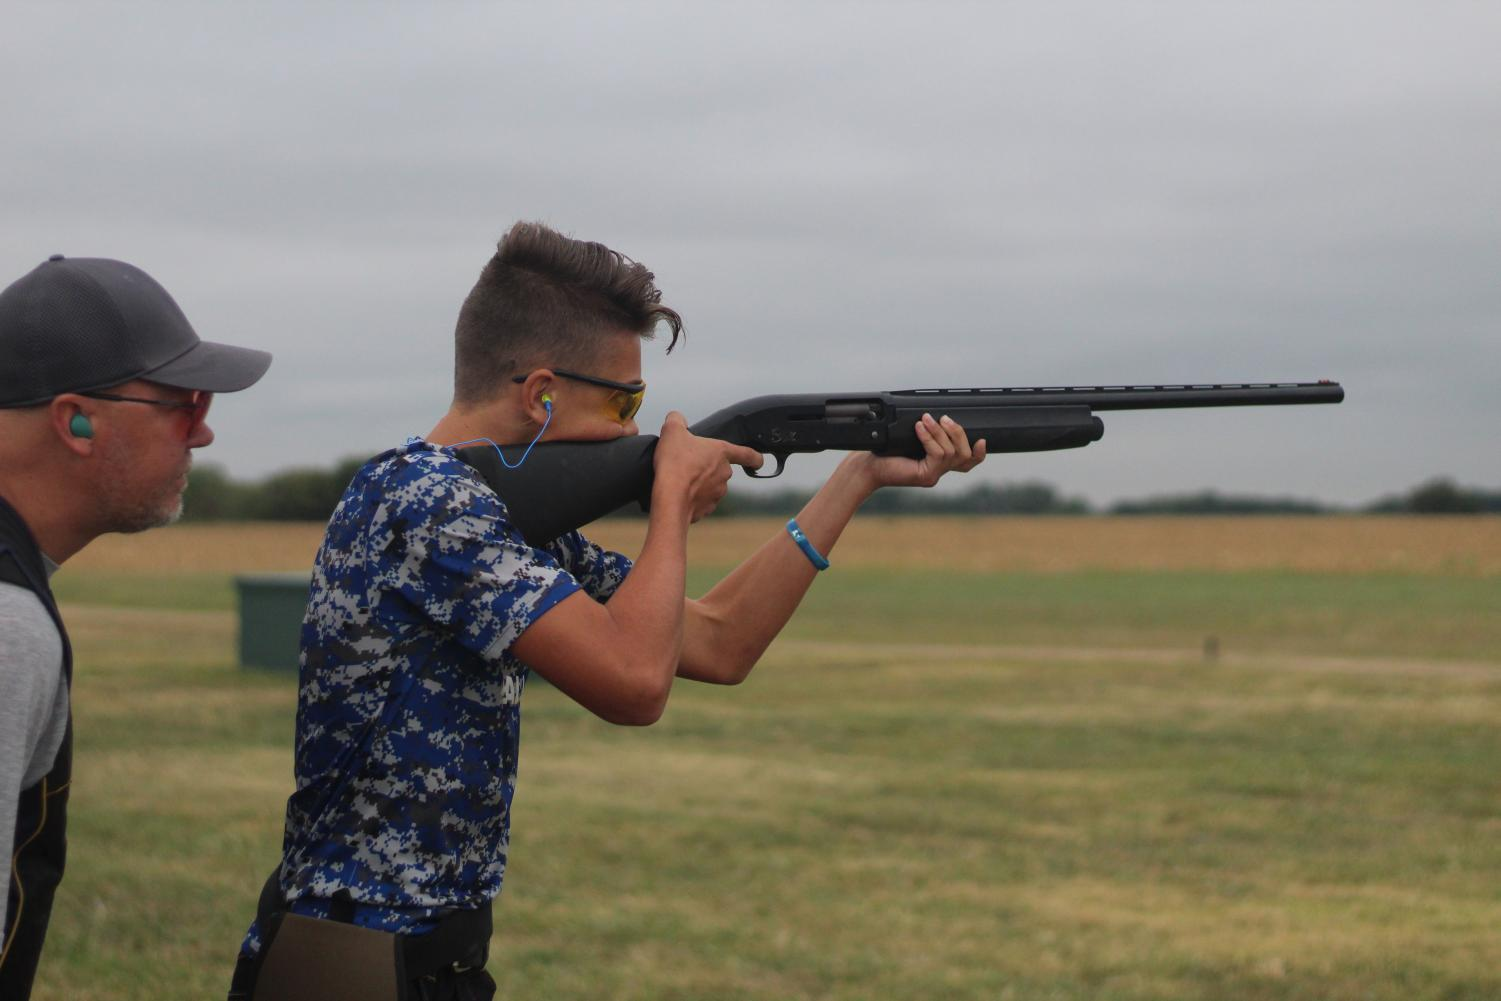 During his first week of competition at Ark Valley Gun Club on the KMC Trapshooting team, Freshman Jacob Steffen, with the help of coach Chris Harter, prepares for his next shot. Overall Jacob was one of the most improved shooters on the team . Photo by Jared Welsby, Staff Photographer.